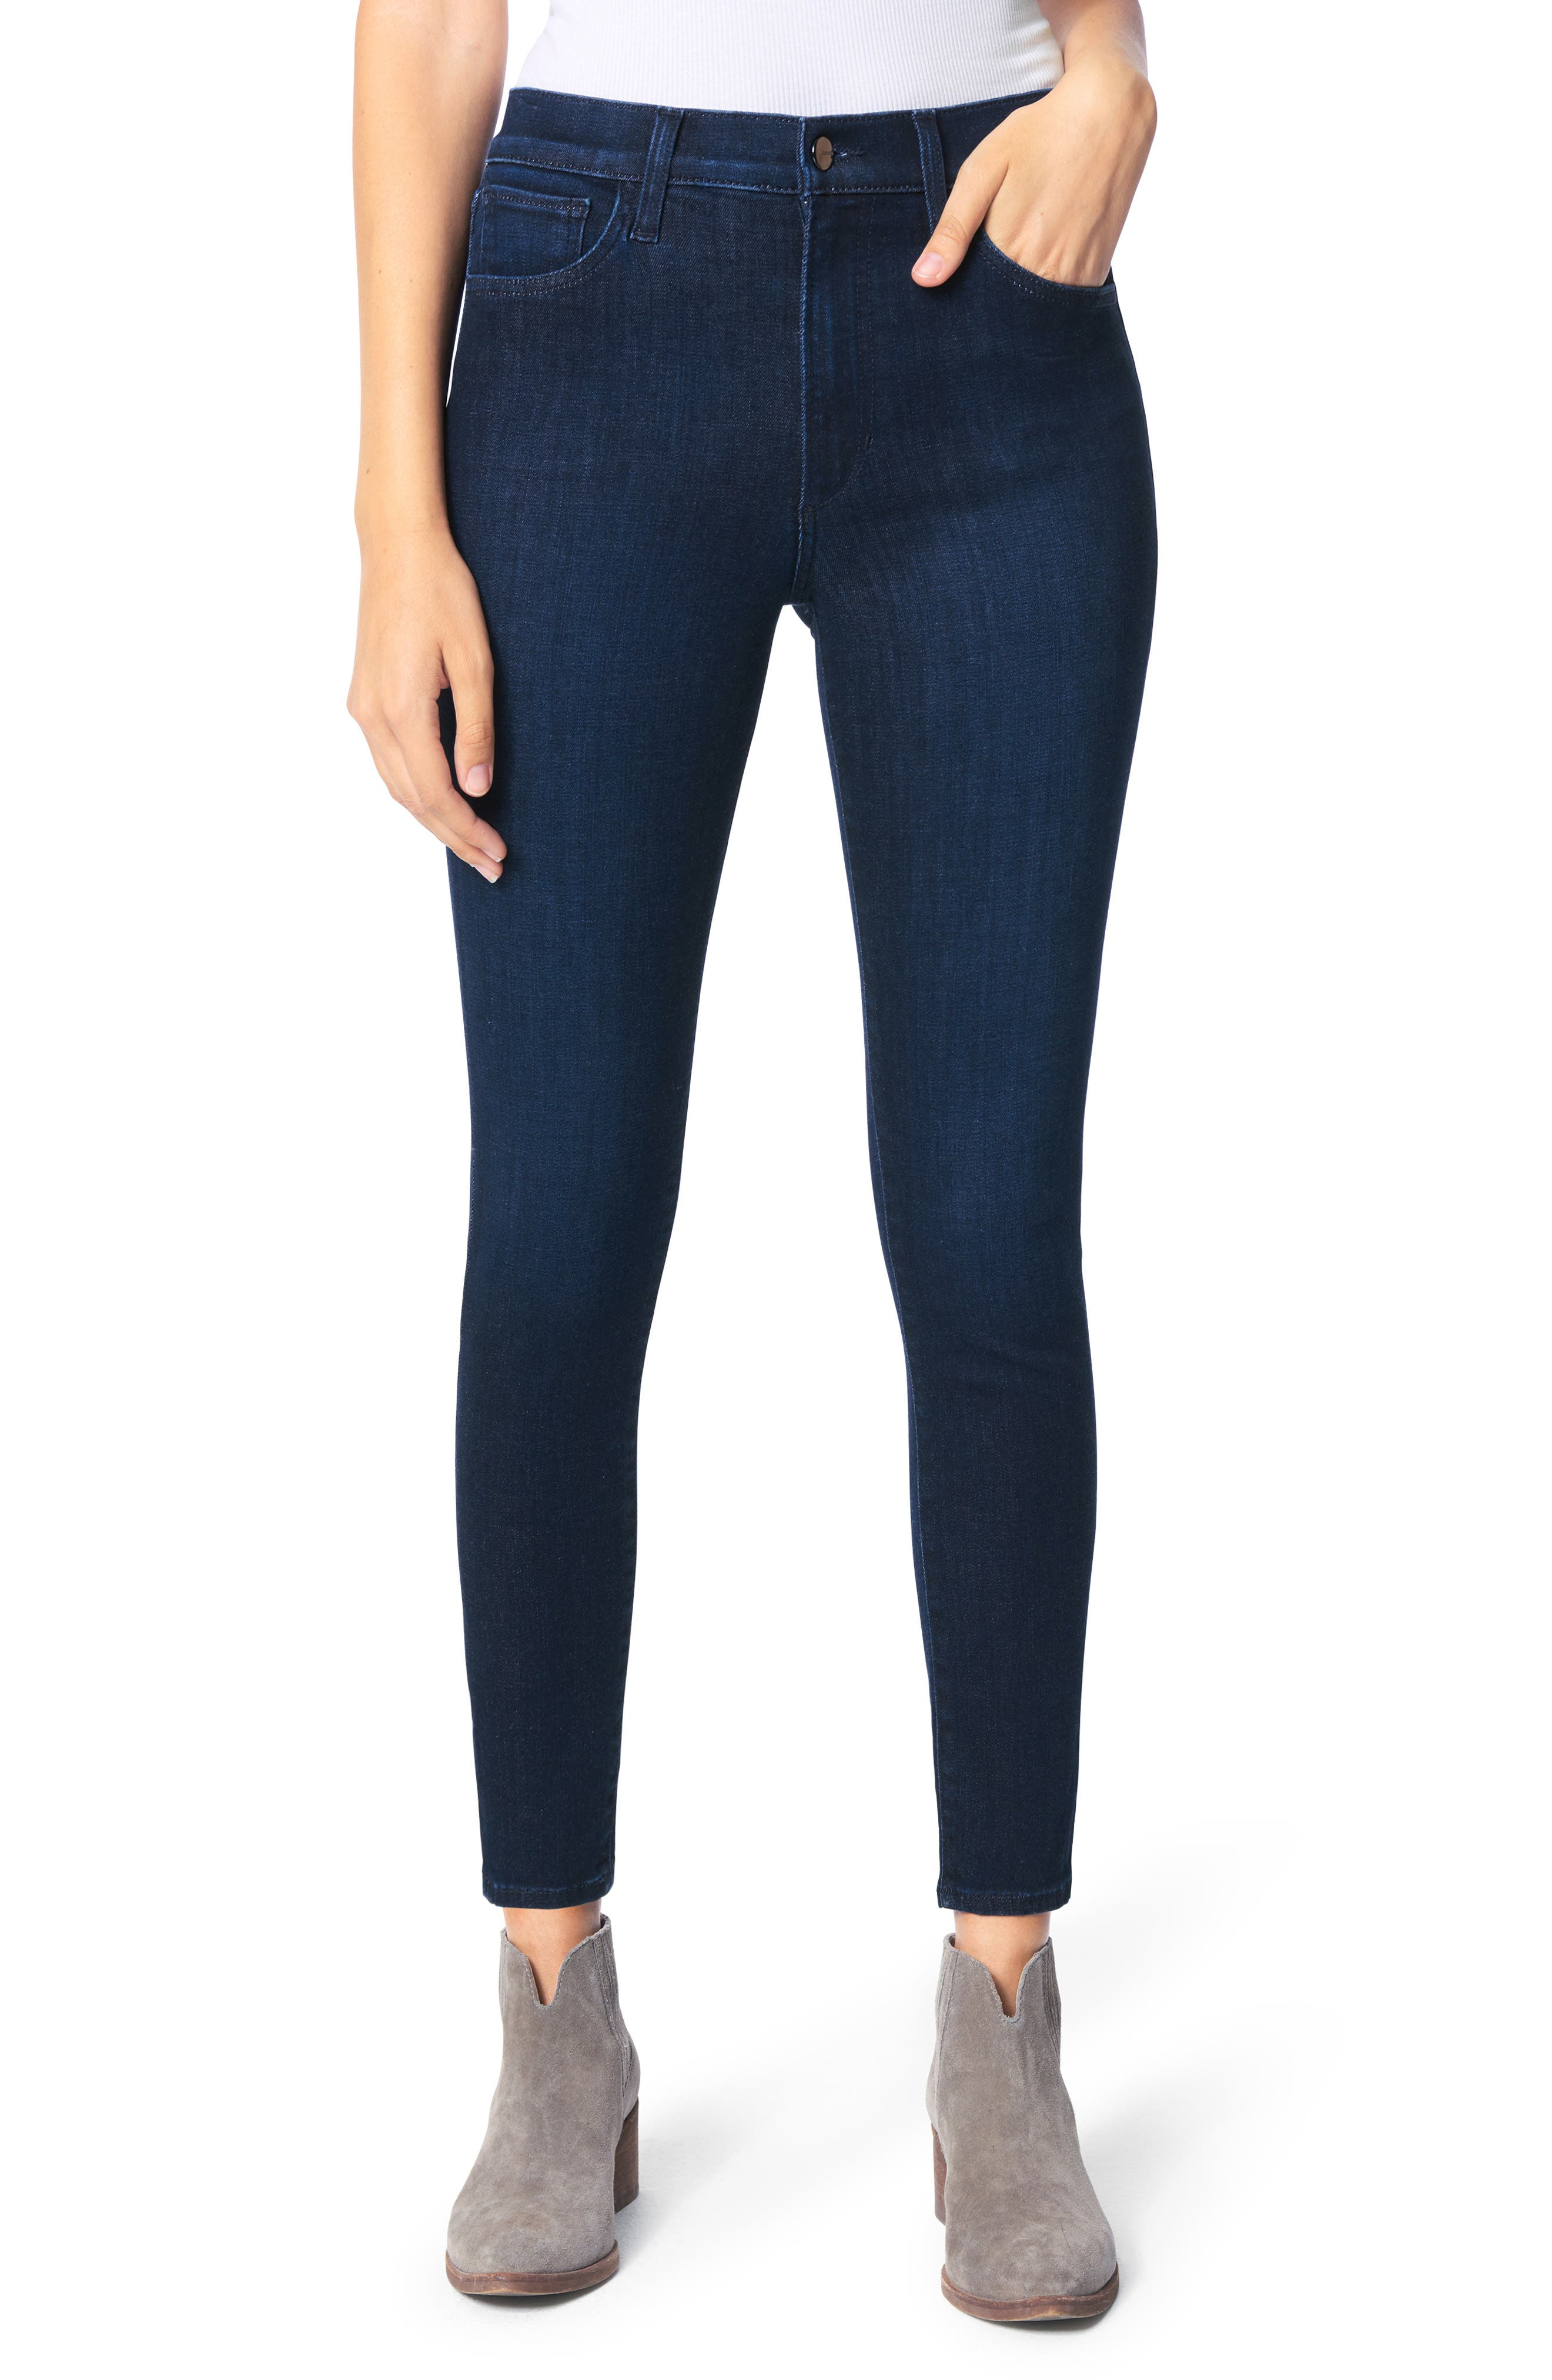 The Charlie High Waist Ankle Skinny Jeans